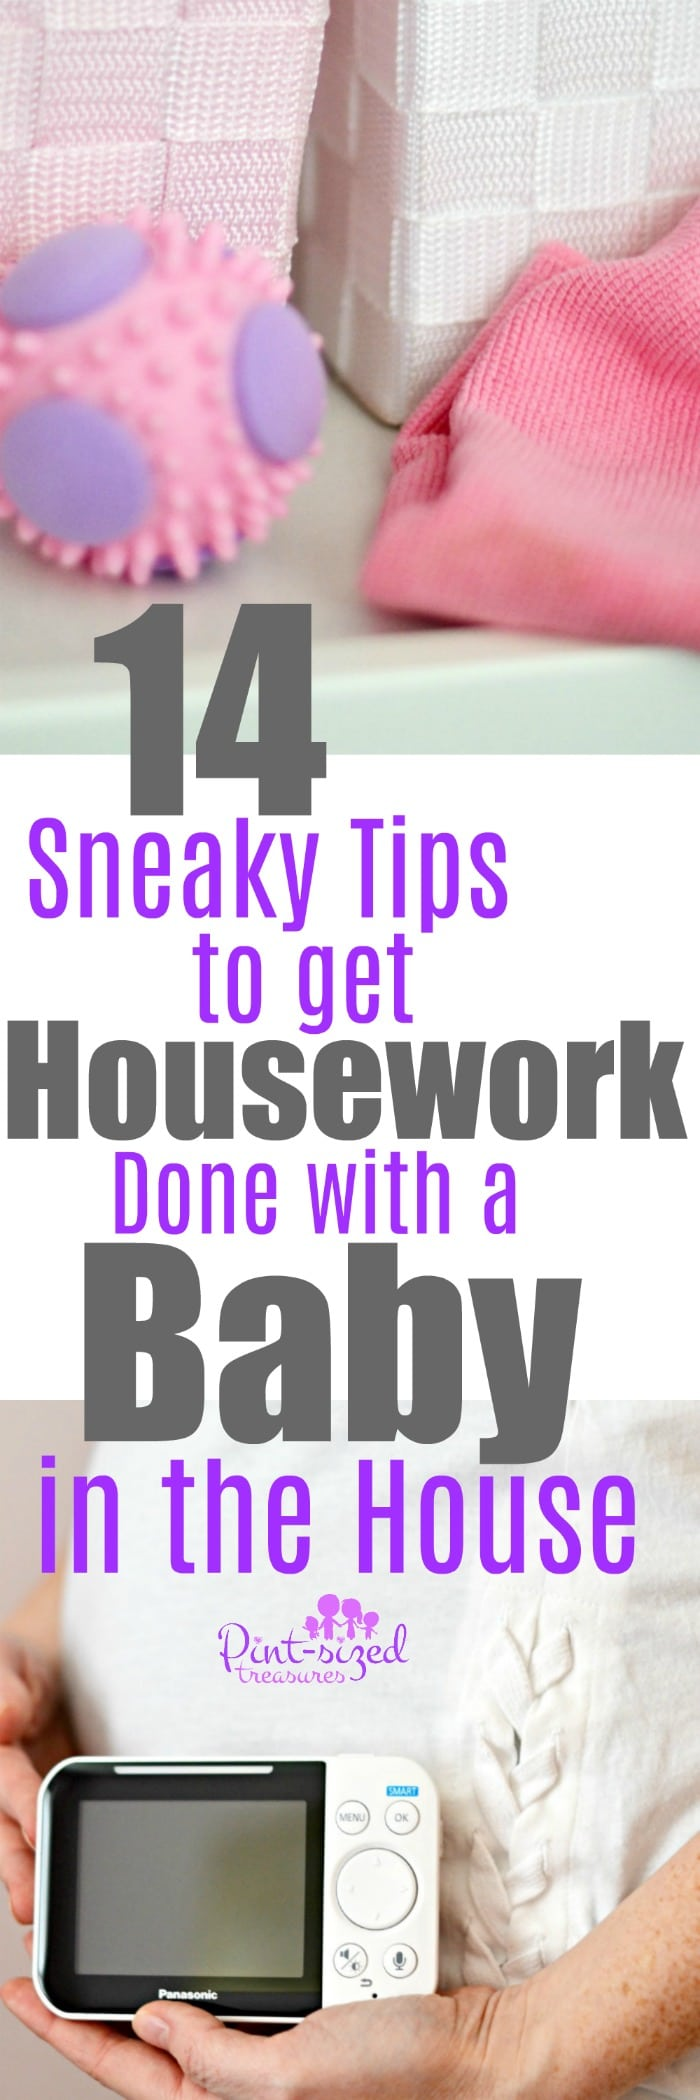 Sneaky tips to get housework done with a baby in the house. These tips REALLY work! #parenting #motherhood #housecleaningtips #cleaningtips #mommyblog #momlife #motherhood #parentinghacks #cleaninghacks #parentinghelp #newmoms #babies